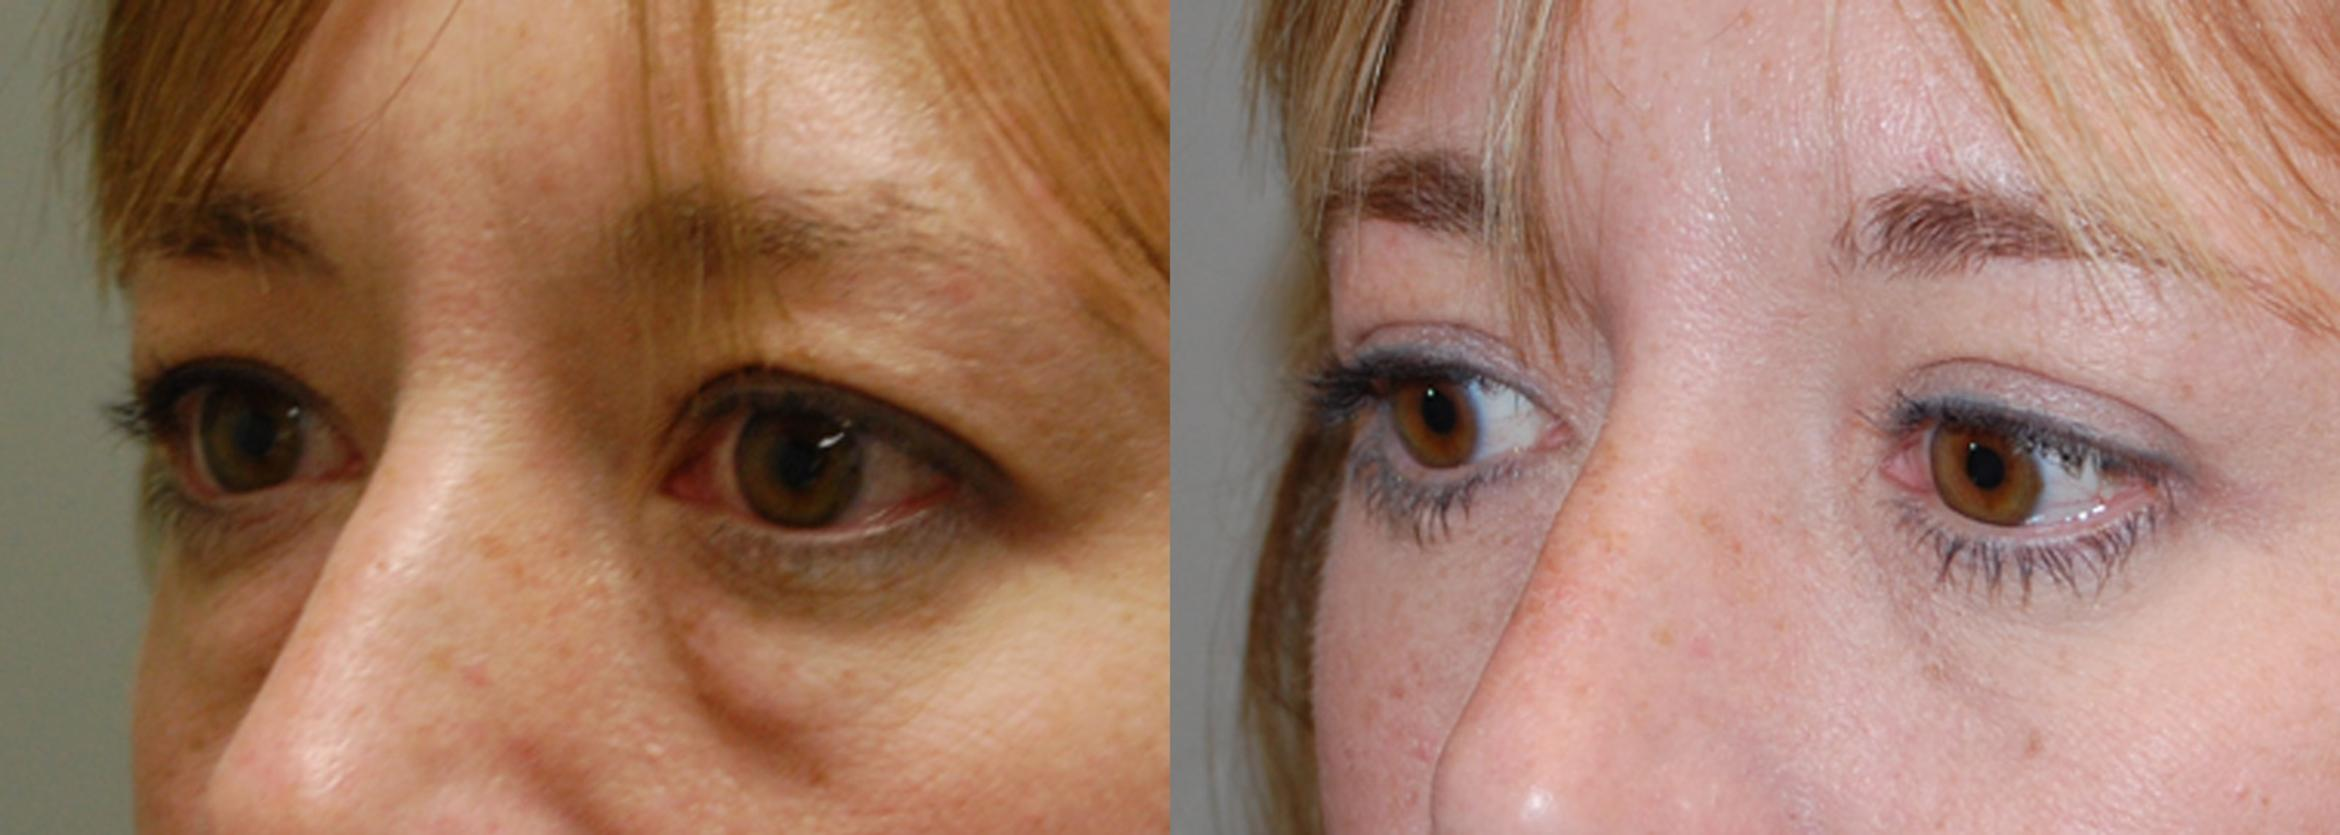 Blepharoplasty Before & After Photo | Longmeadow, MA | Aesthetic Plastic & Reconstructive Surgery